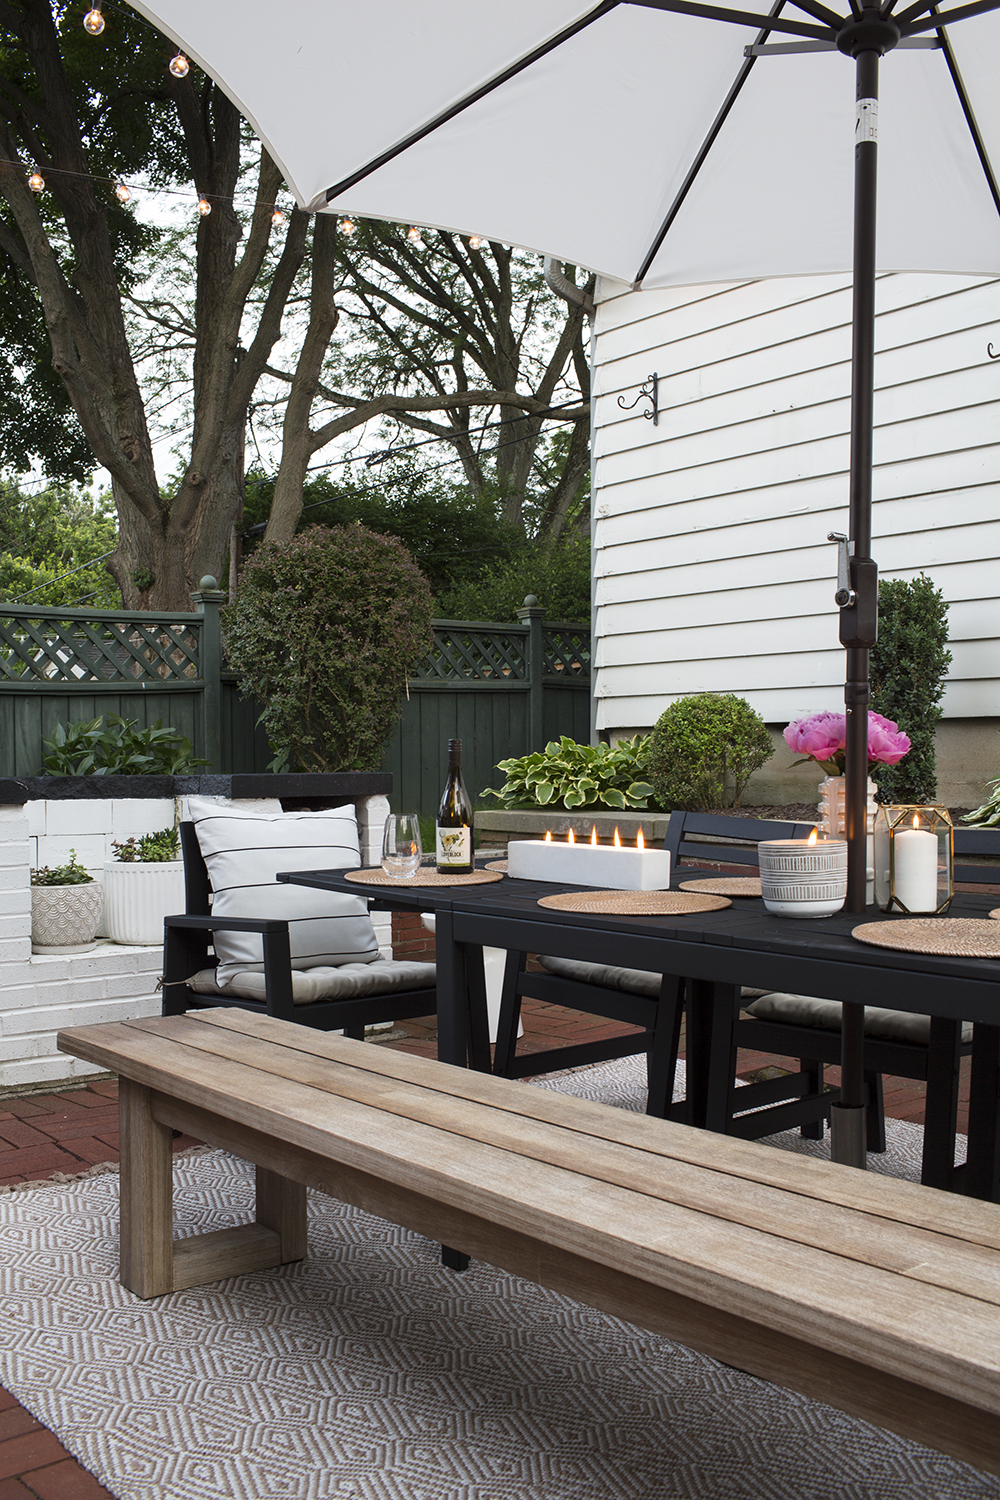 Jacqueline's Patio Refresh - roomfortuesday.com